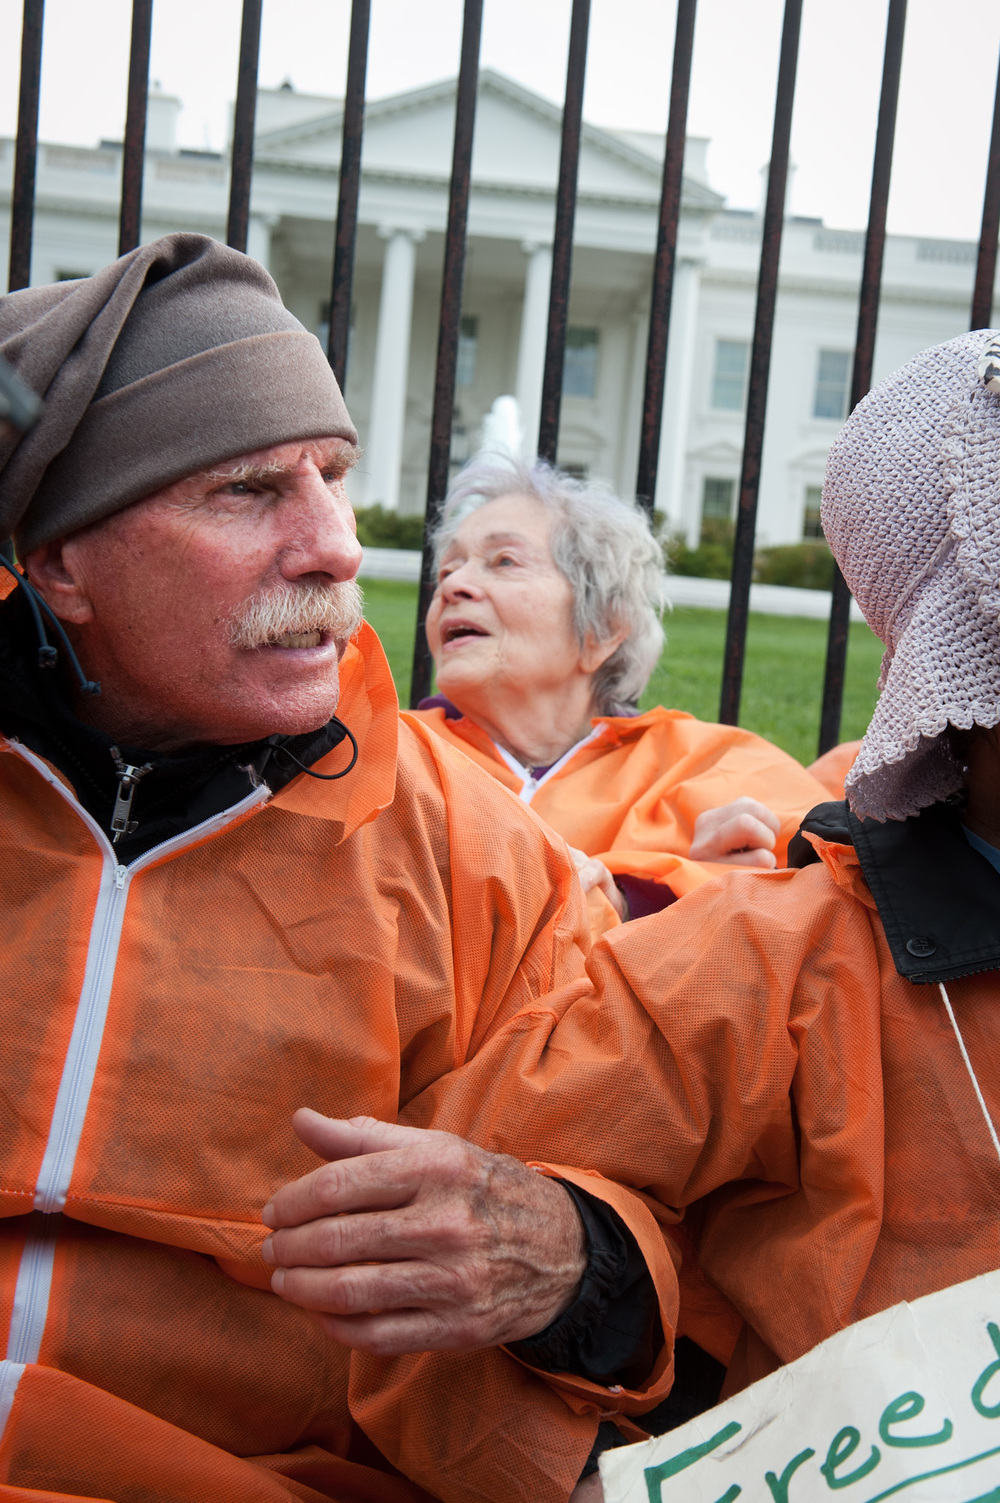 Activists prepare to be arrested in front of the White House. Many being retired, elderly are commonly the ones volunteering for arrestable civil disobedience actions. (Apriul 24th, 2012)